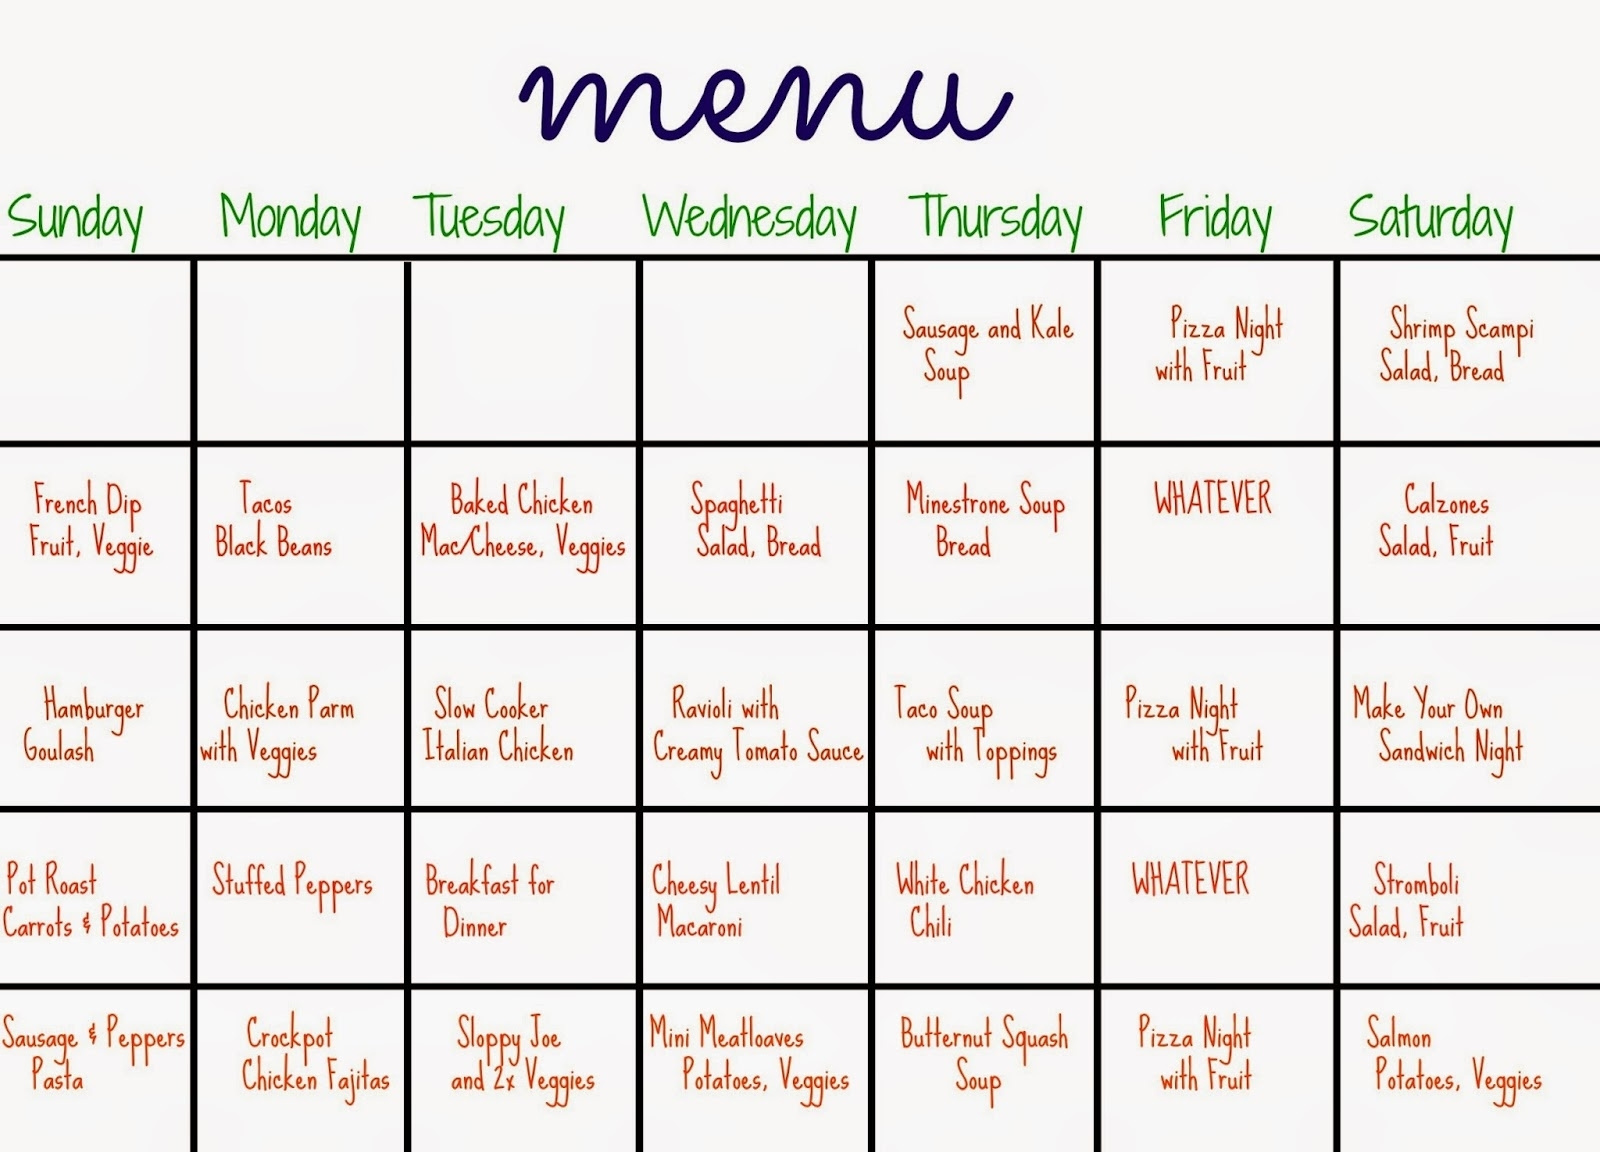 31 Days Of Dinners: A Menu Plan For The Whole Month - The